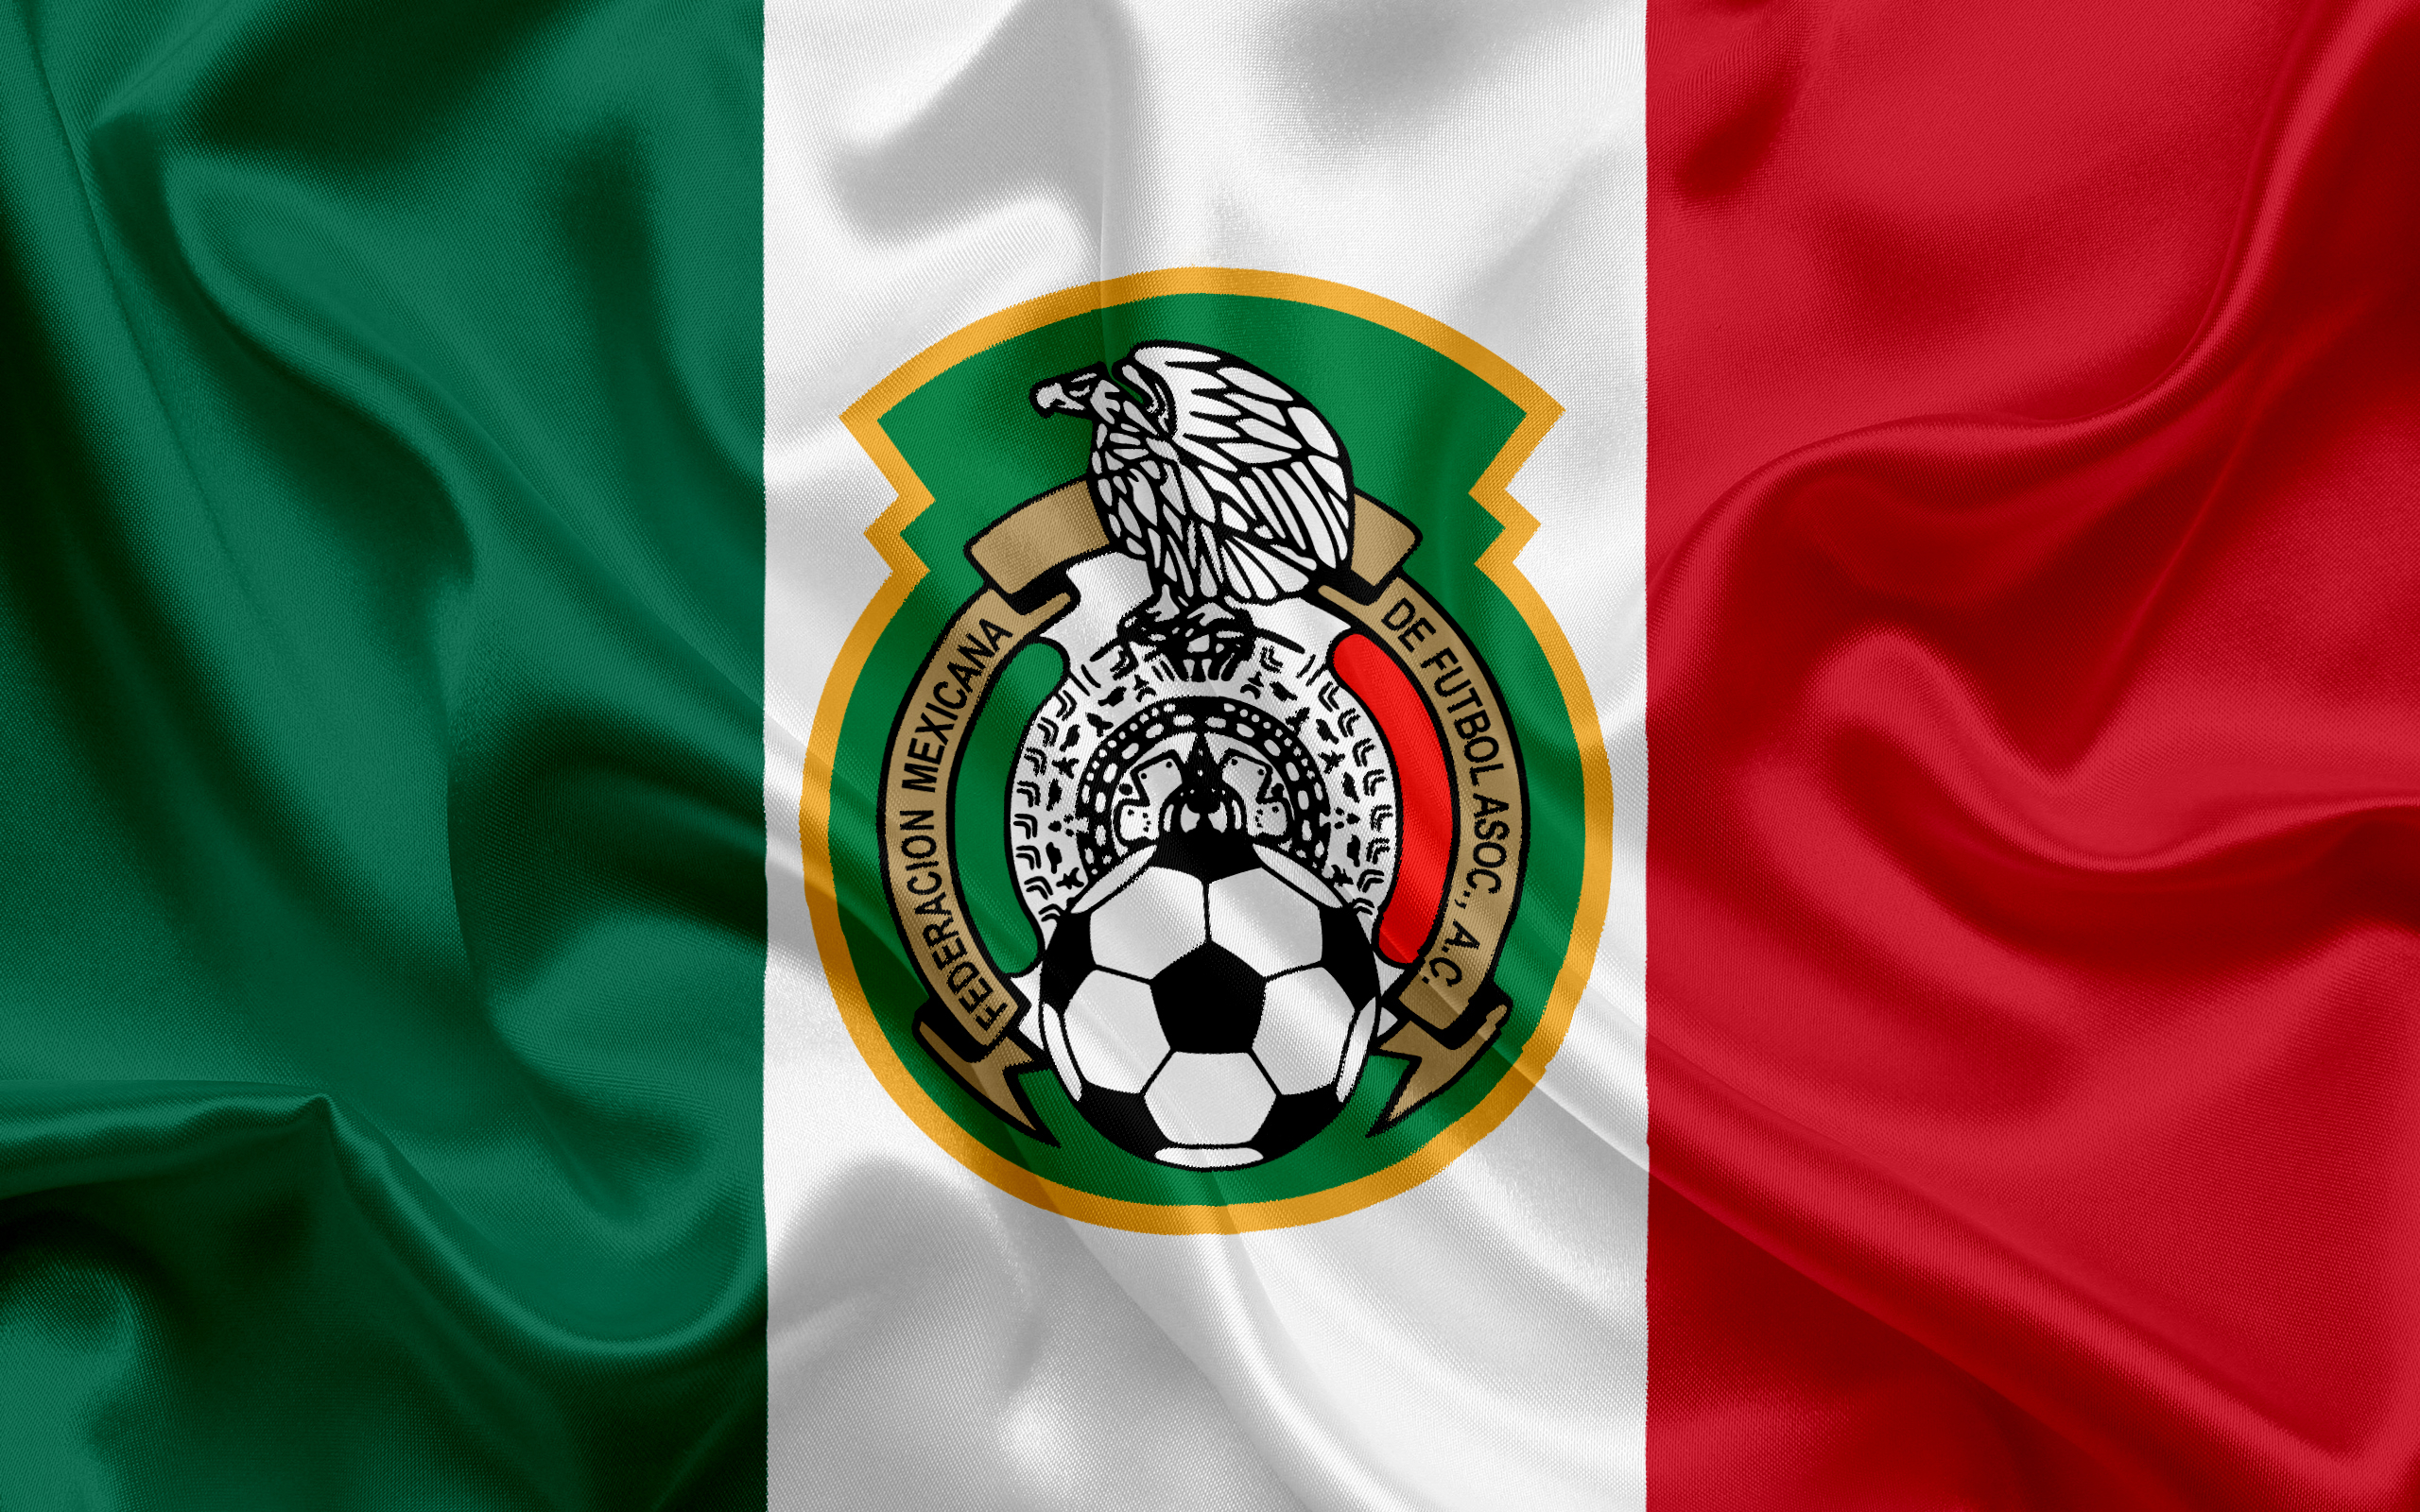 Mexico National Football Team Hd Wallpaper Background Image